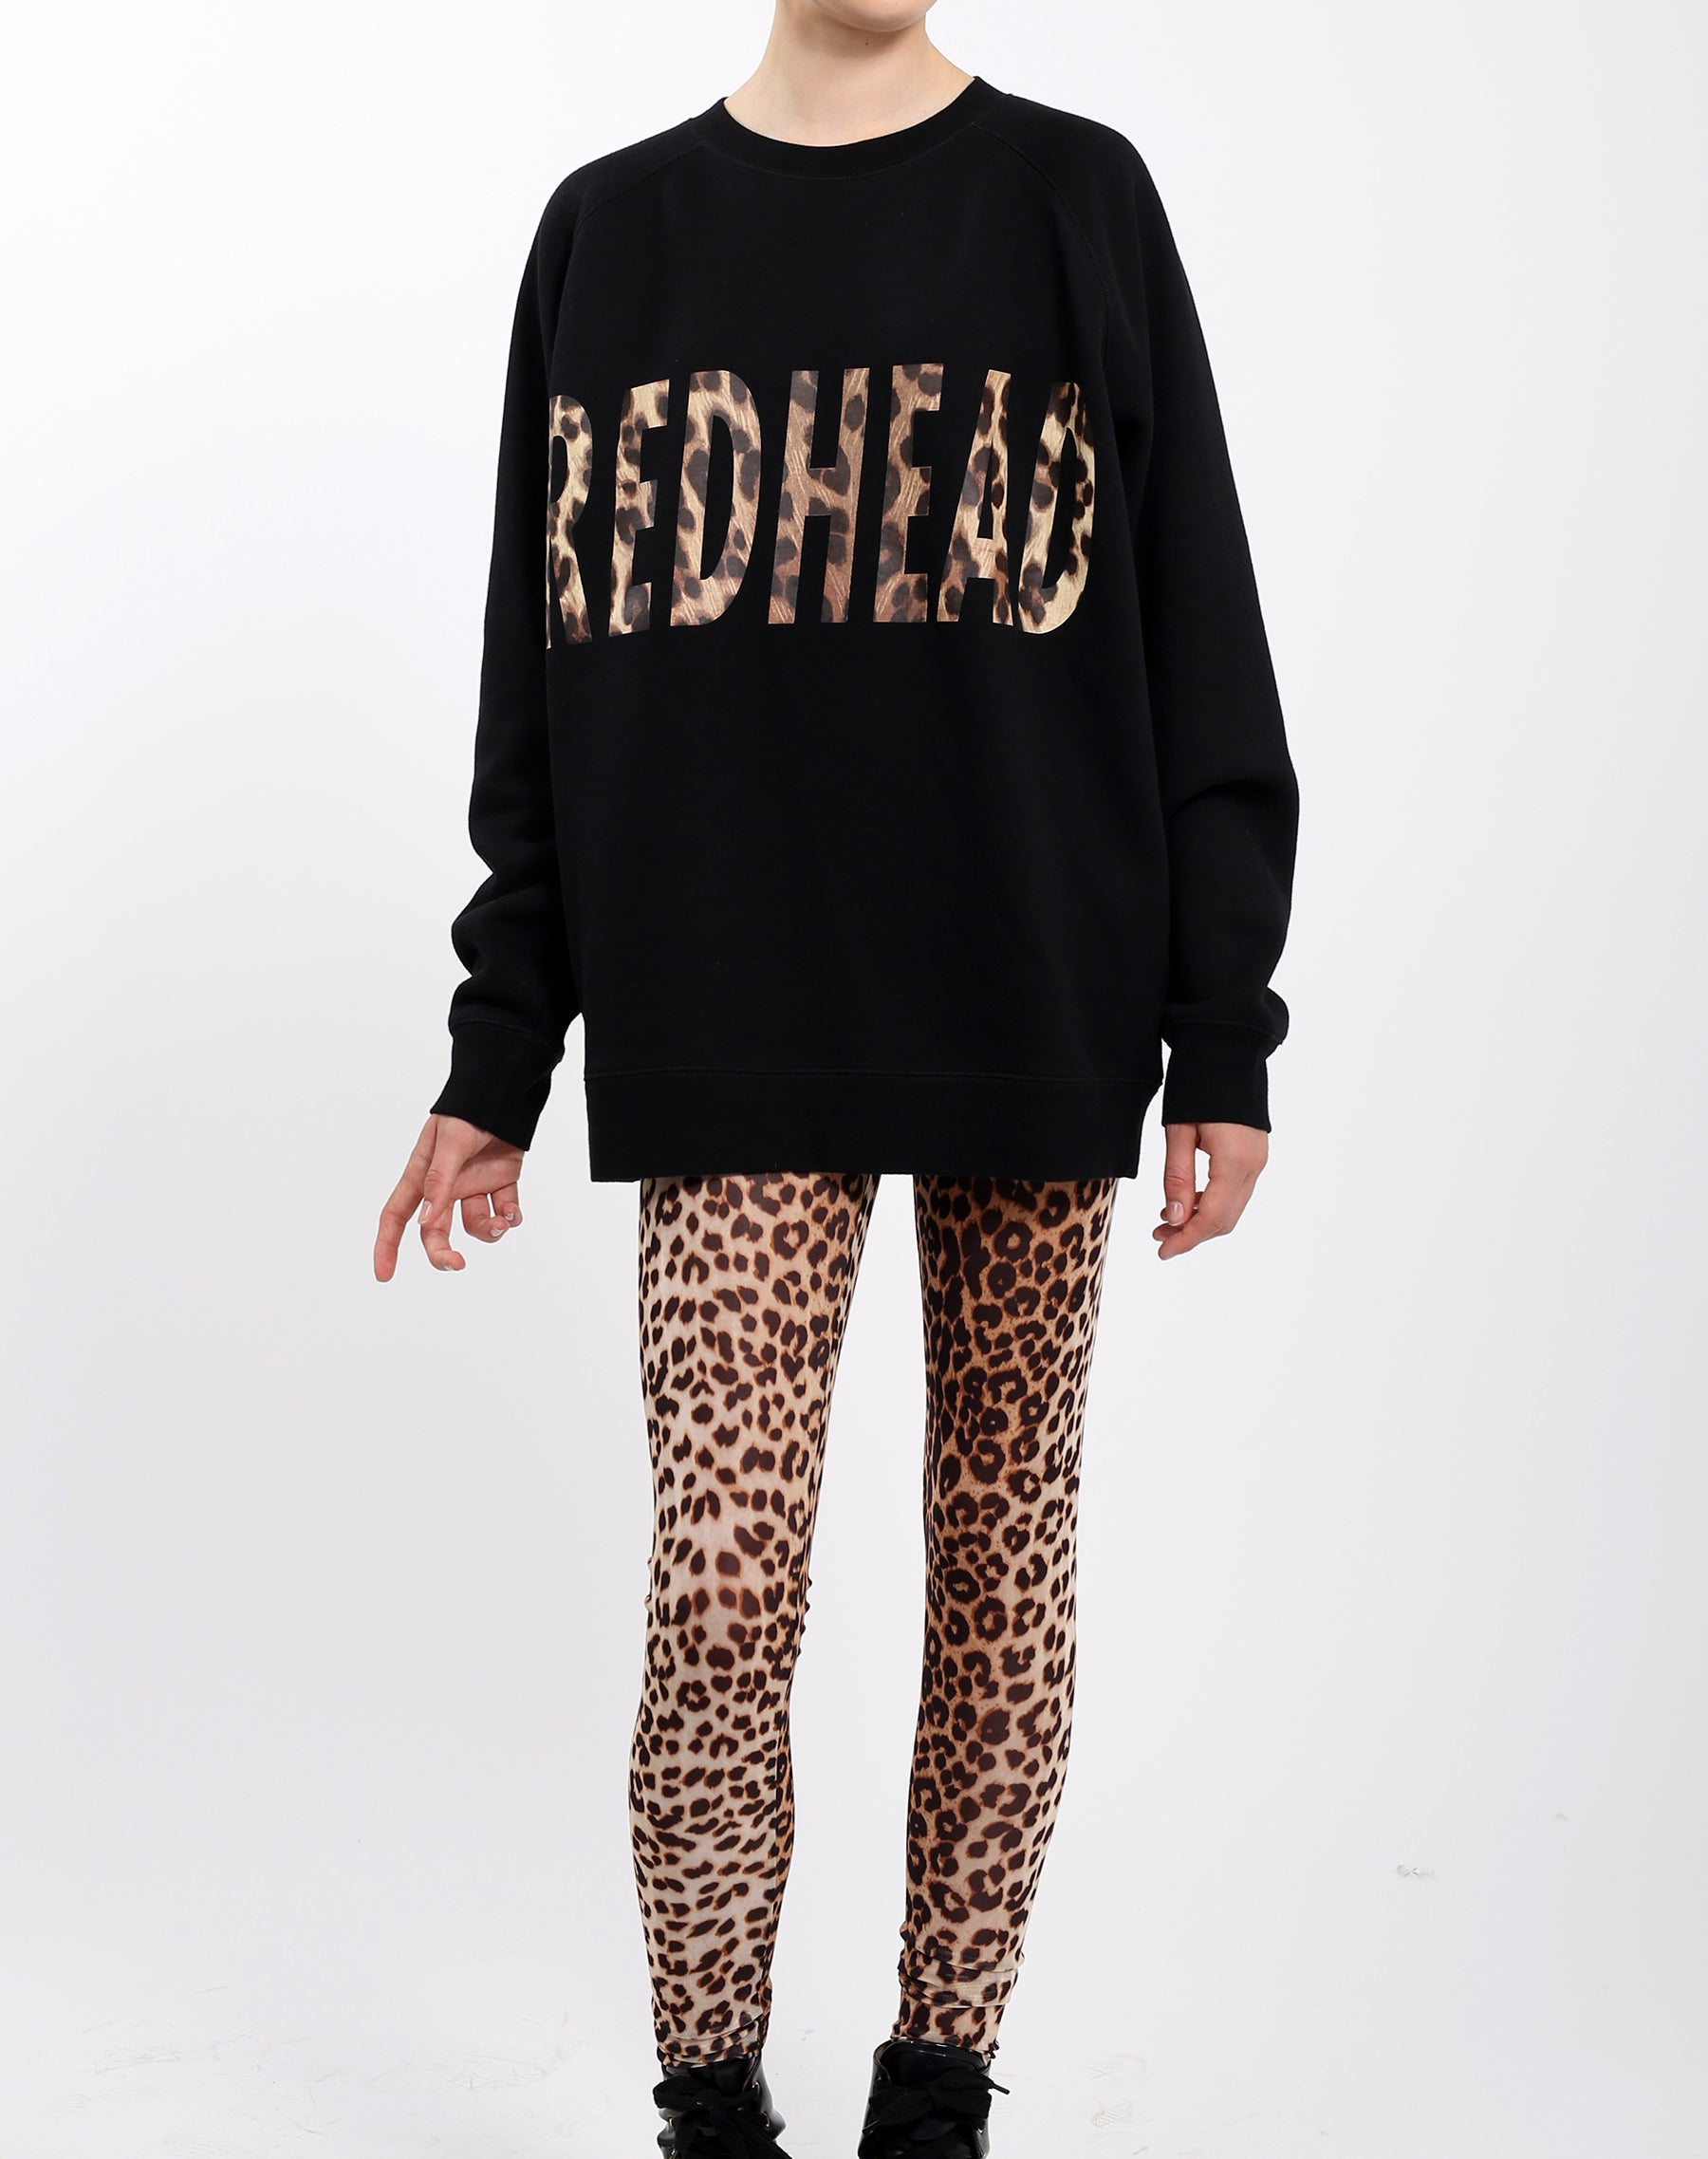 Photo 2 of the Redhead big sister crew neck sweatshirt in leopard by Brunette the Label.